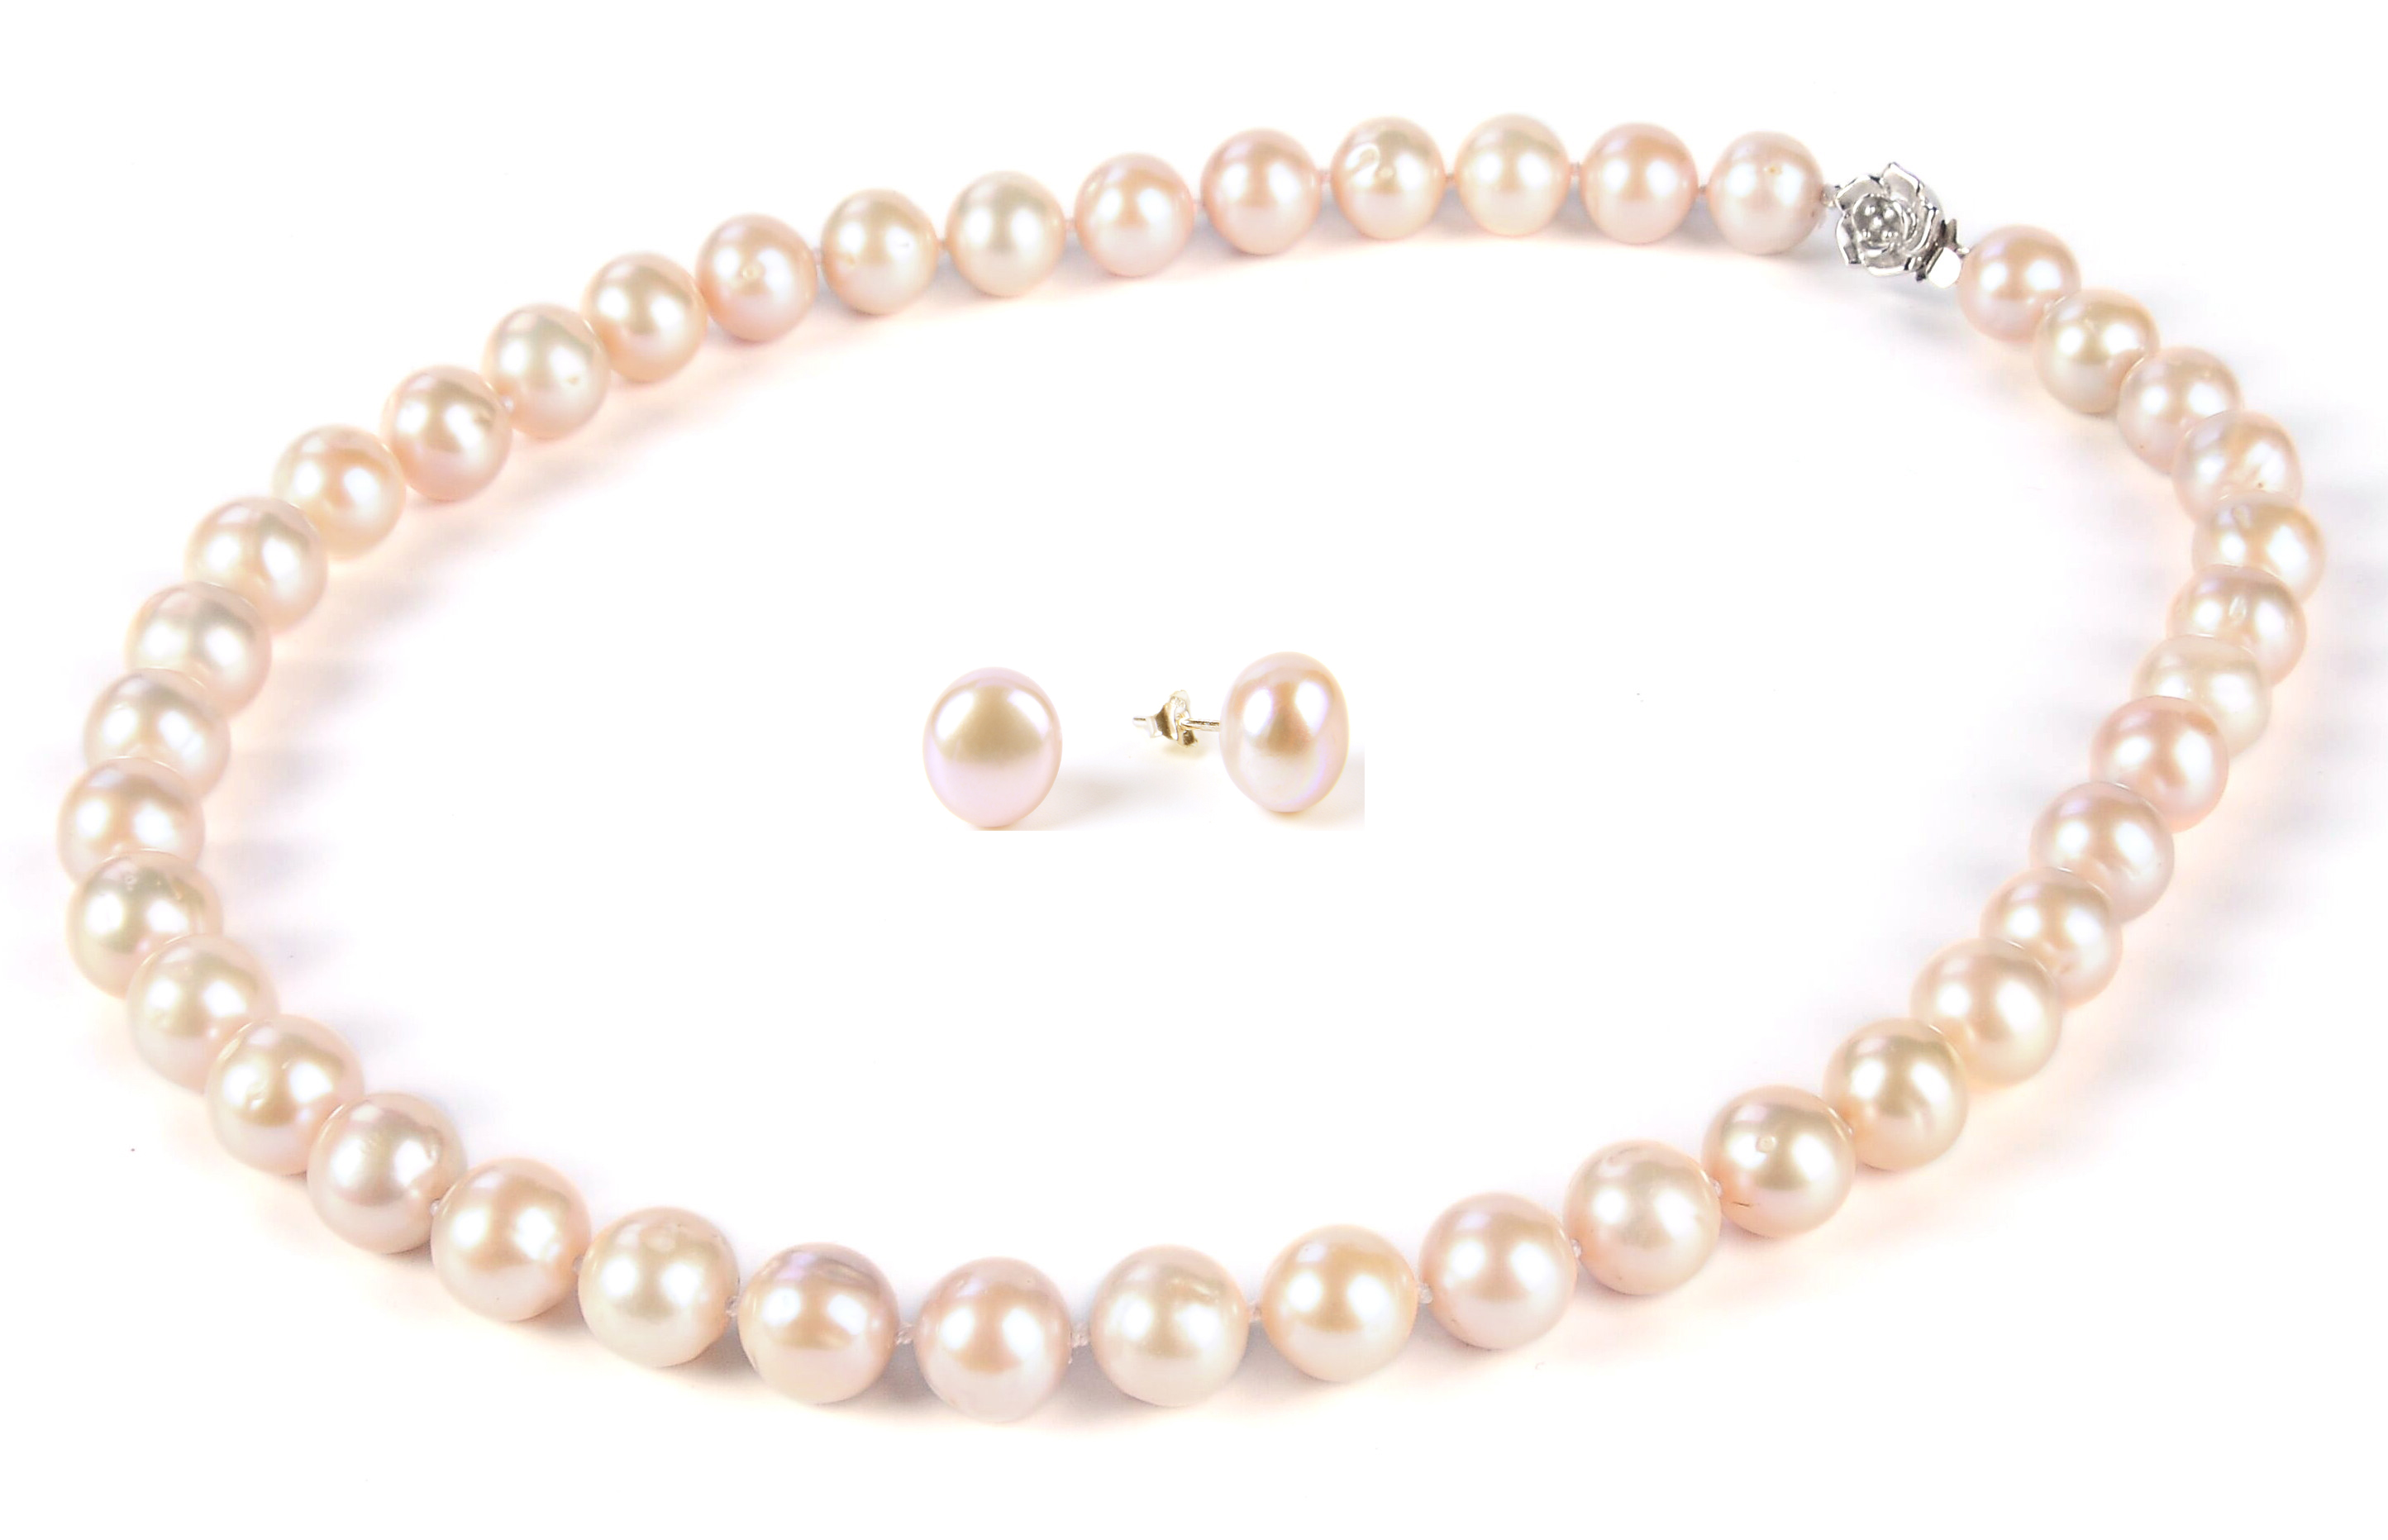 Freshwater Pearl Set 10 Mm Lavender Freshwater Pearl Necklace